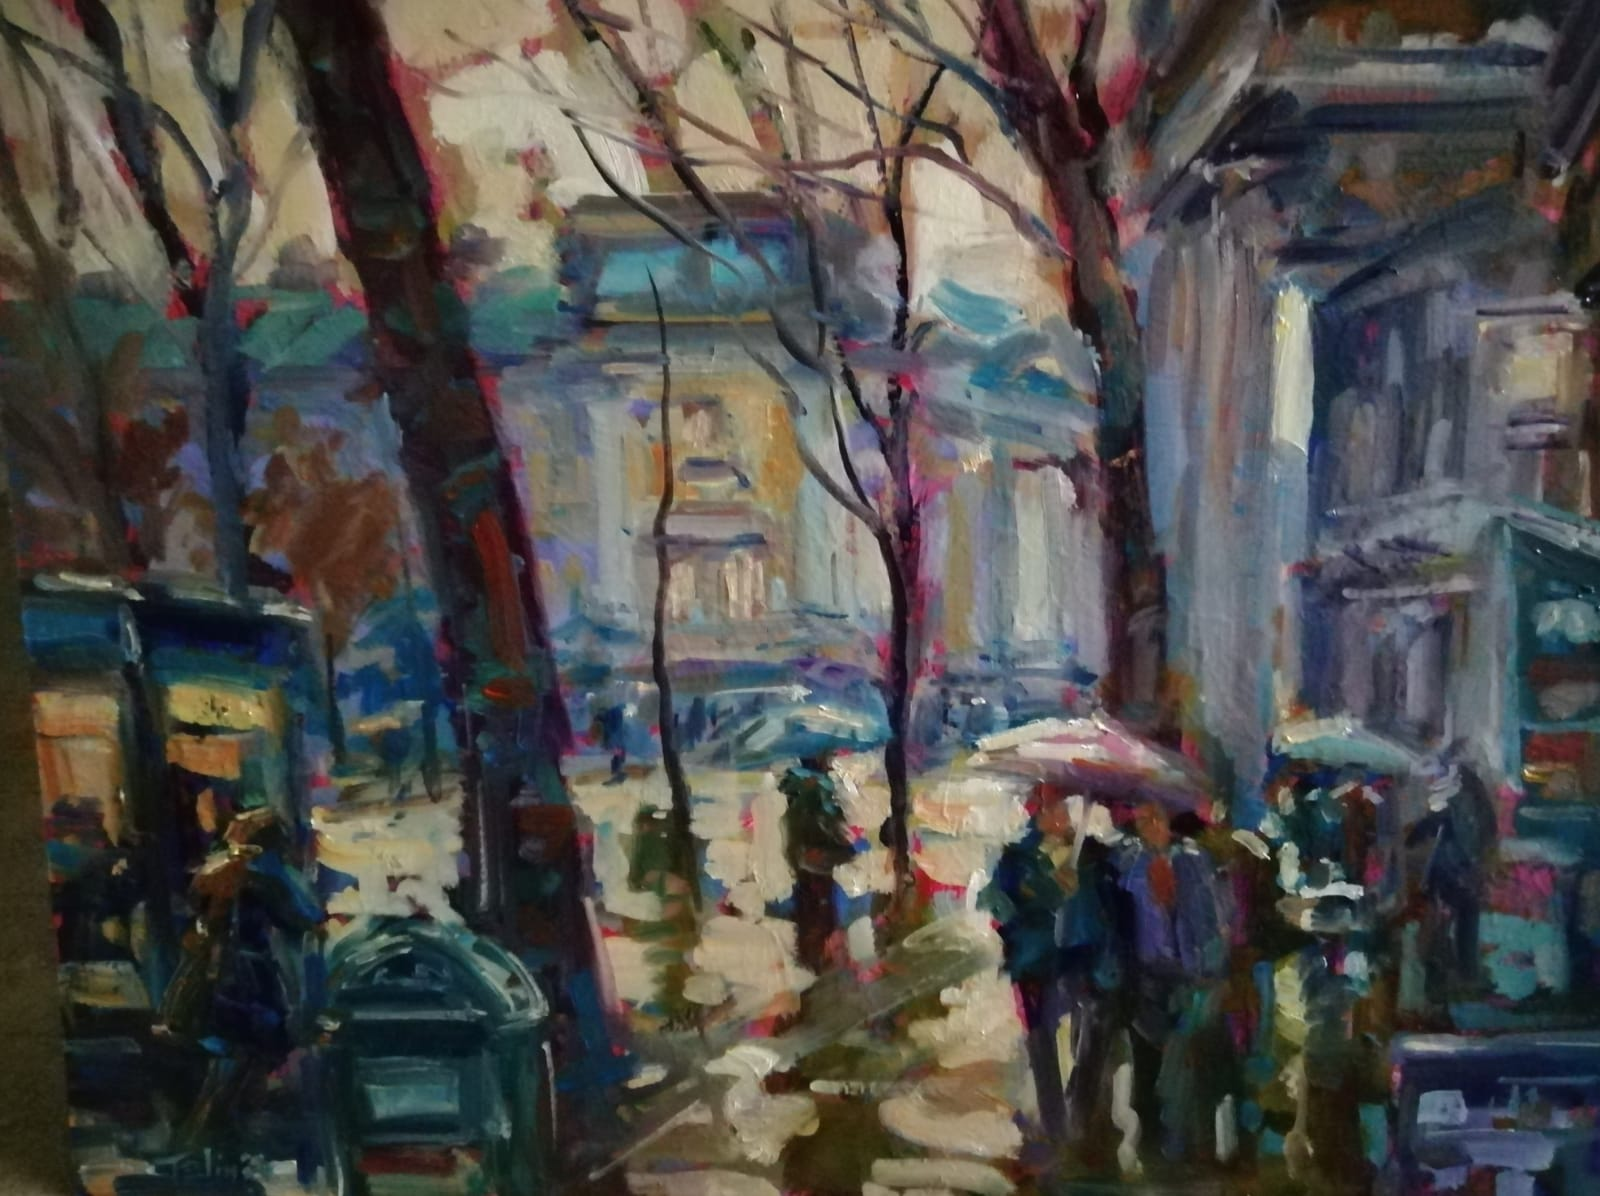 'Wet Afternoon College Green',  oil on board, 51cm x 61cm, £1,800